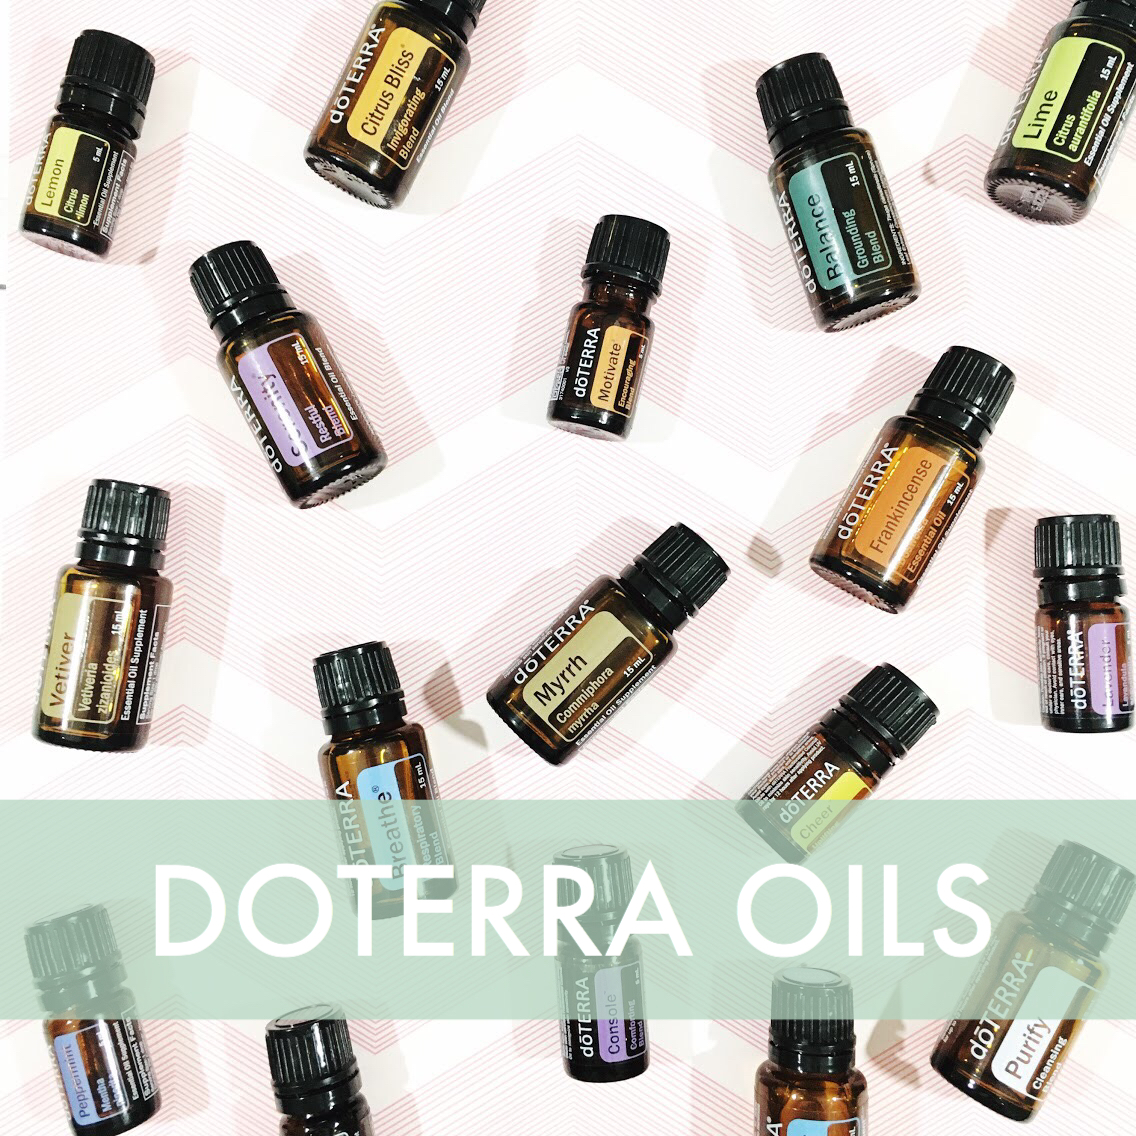 SHOP-DOTERRA-OILS